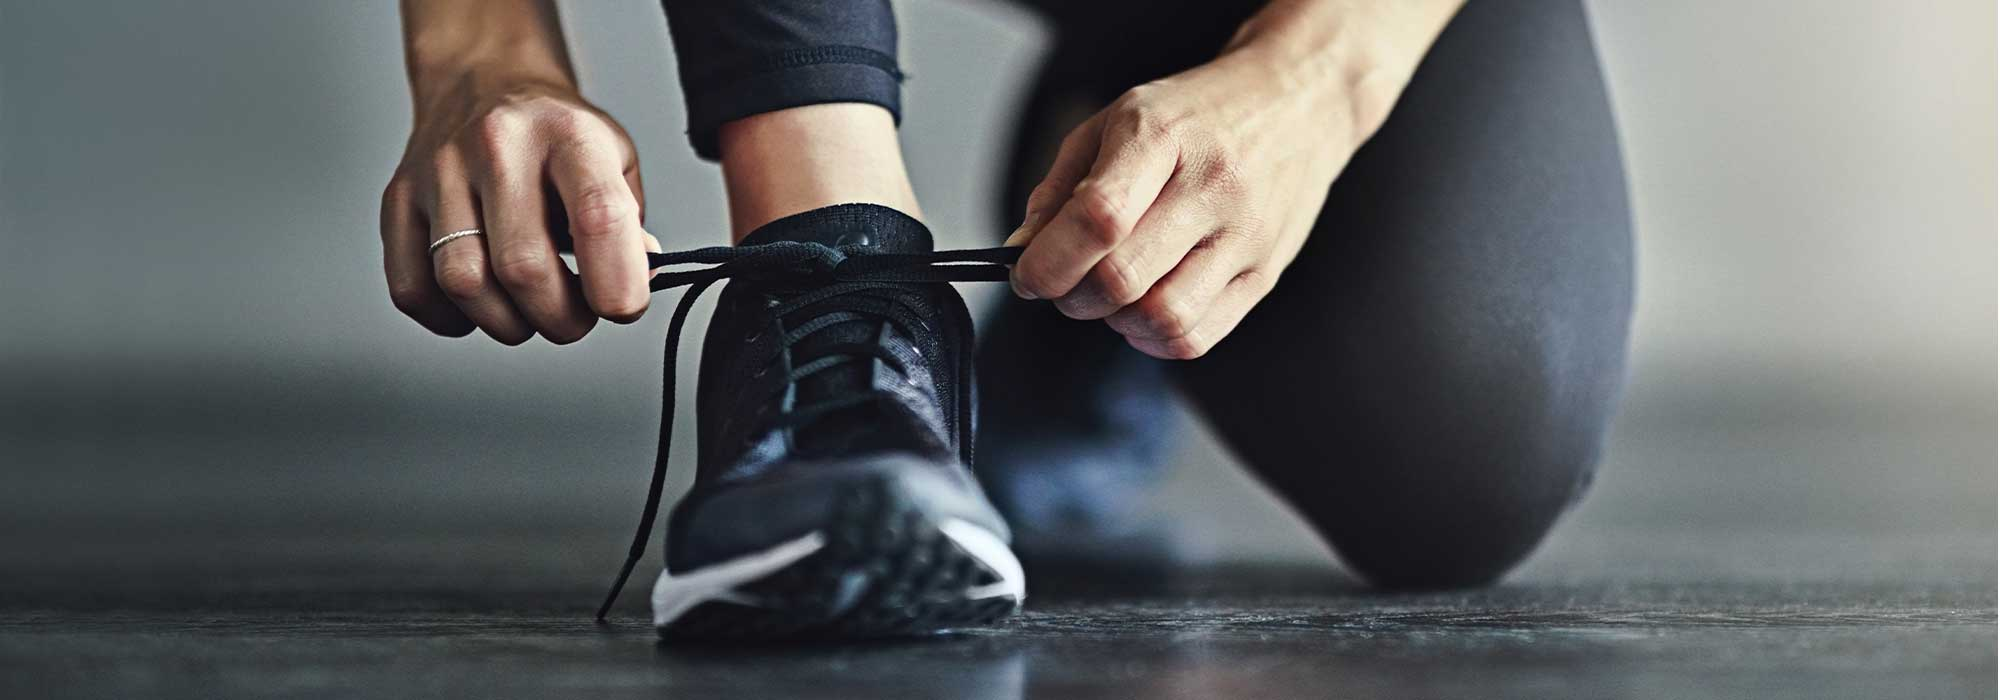 How To Tell If You Need More Exercise – News